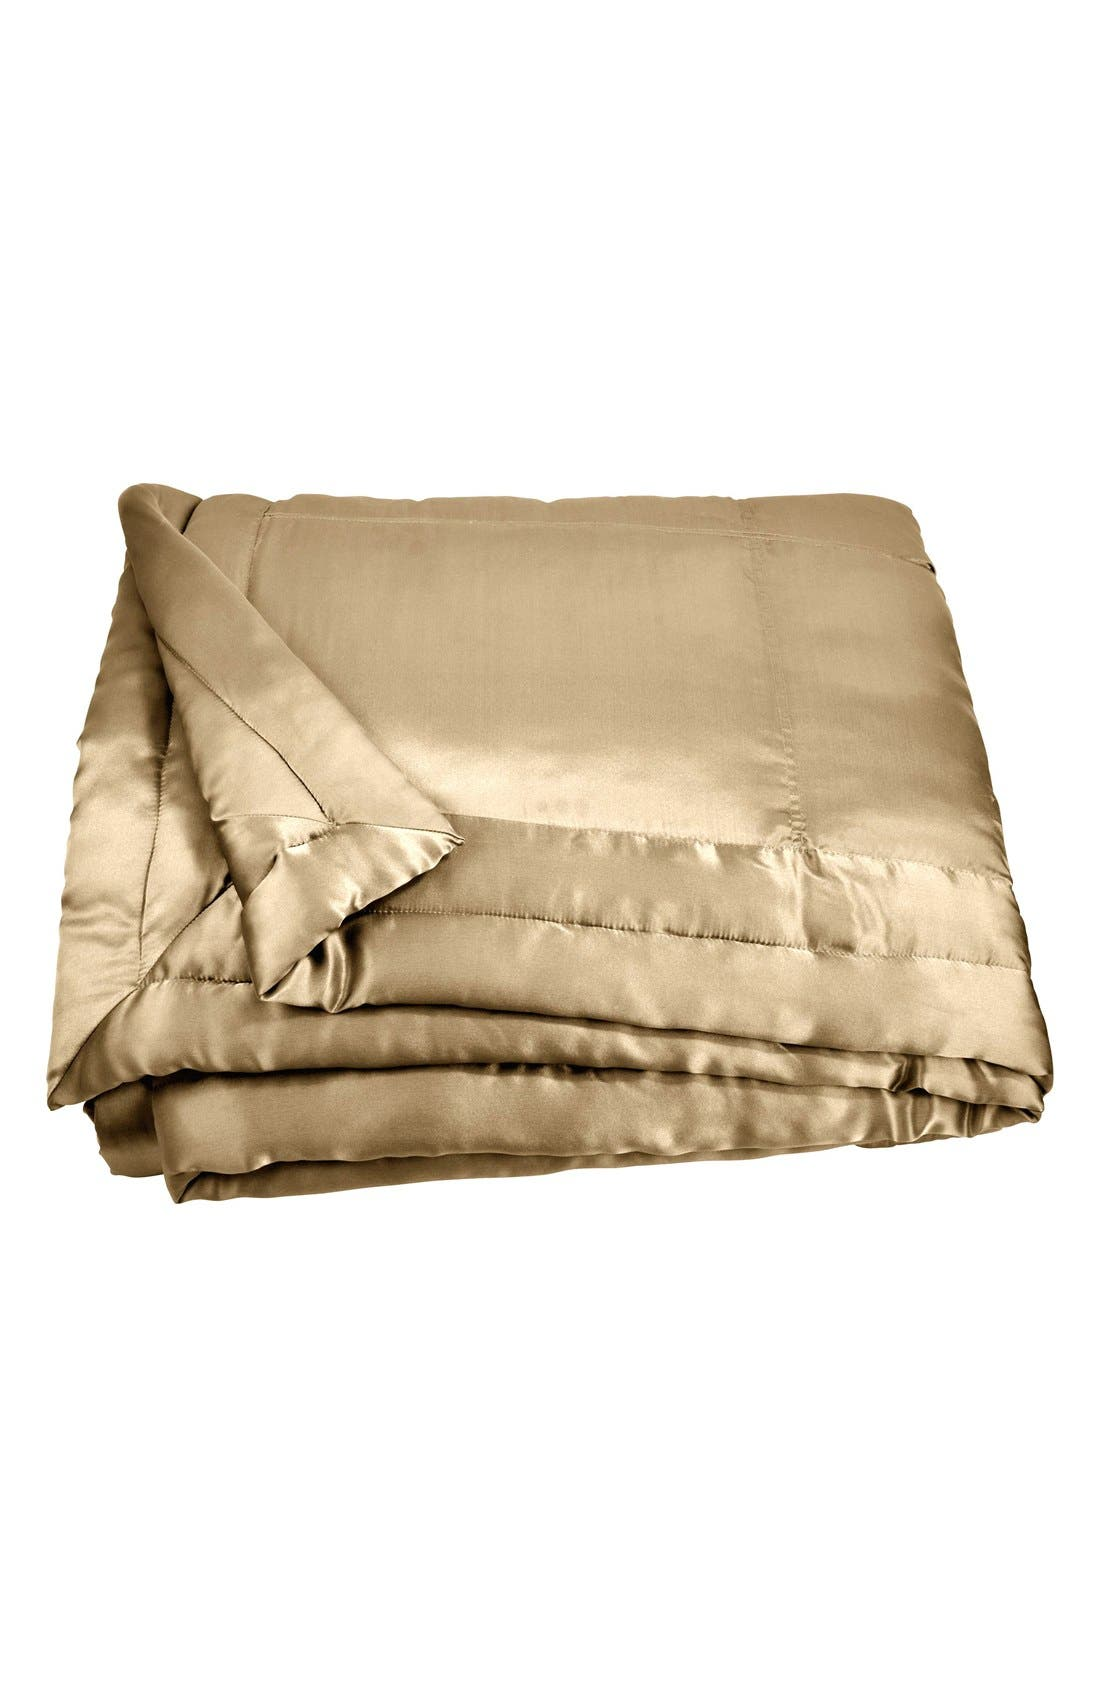 Donna Karan Collection 'Reflection' Quilt